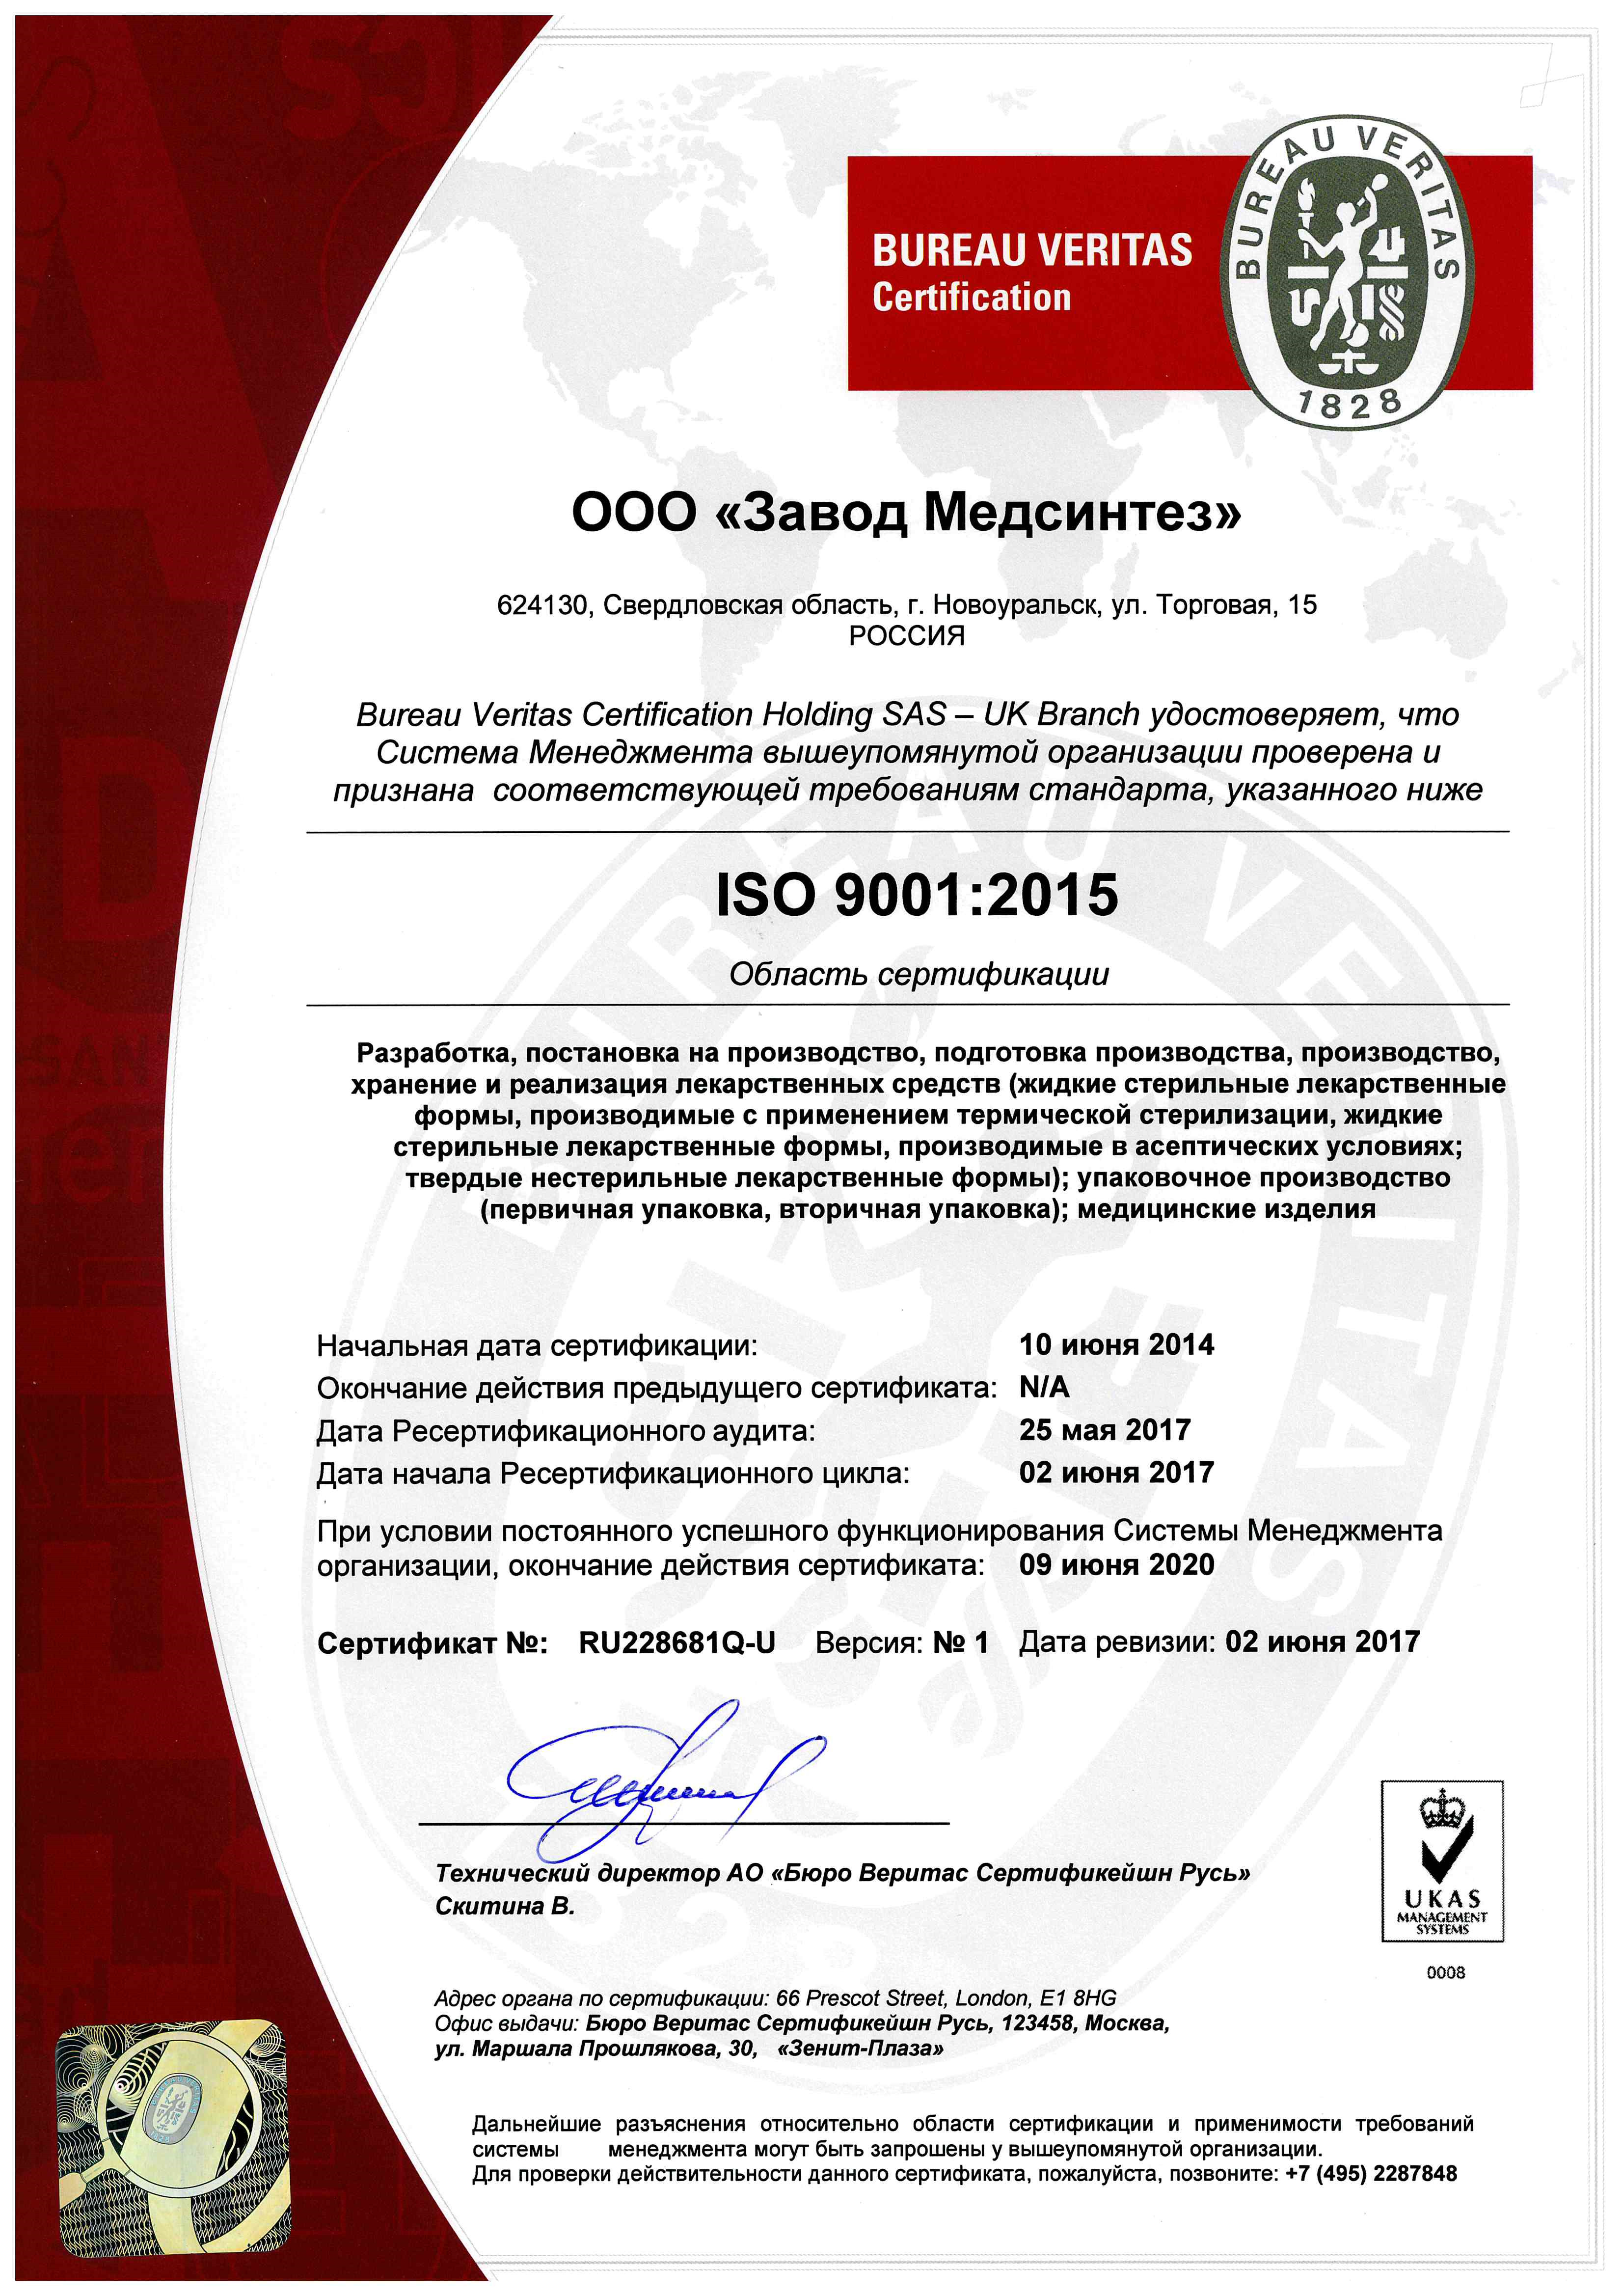 Certificate of compliance with the ISO 9001:2015 quality management system (certification body: BUREAU VERITAS)